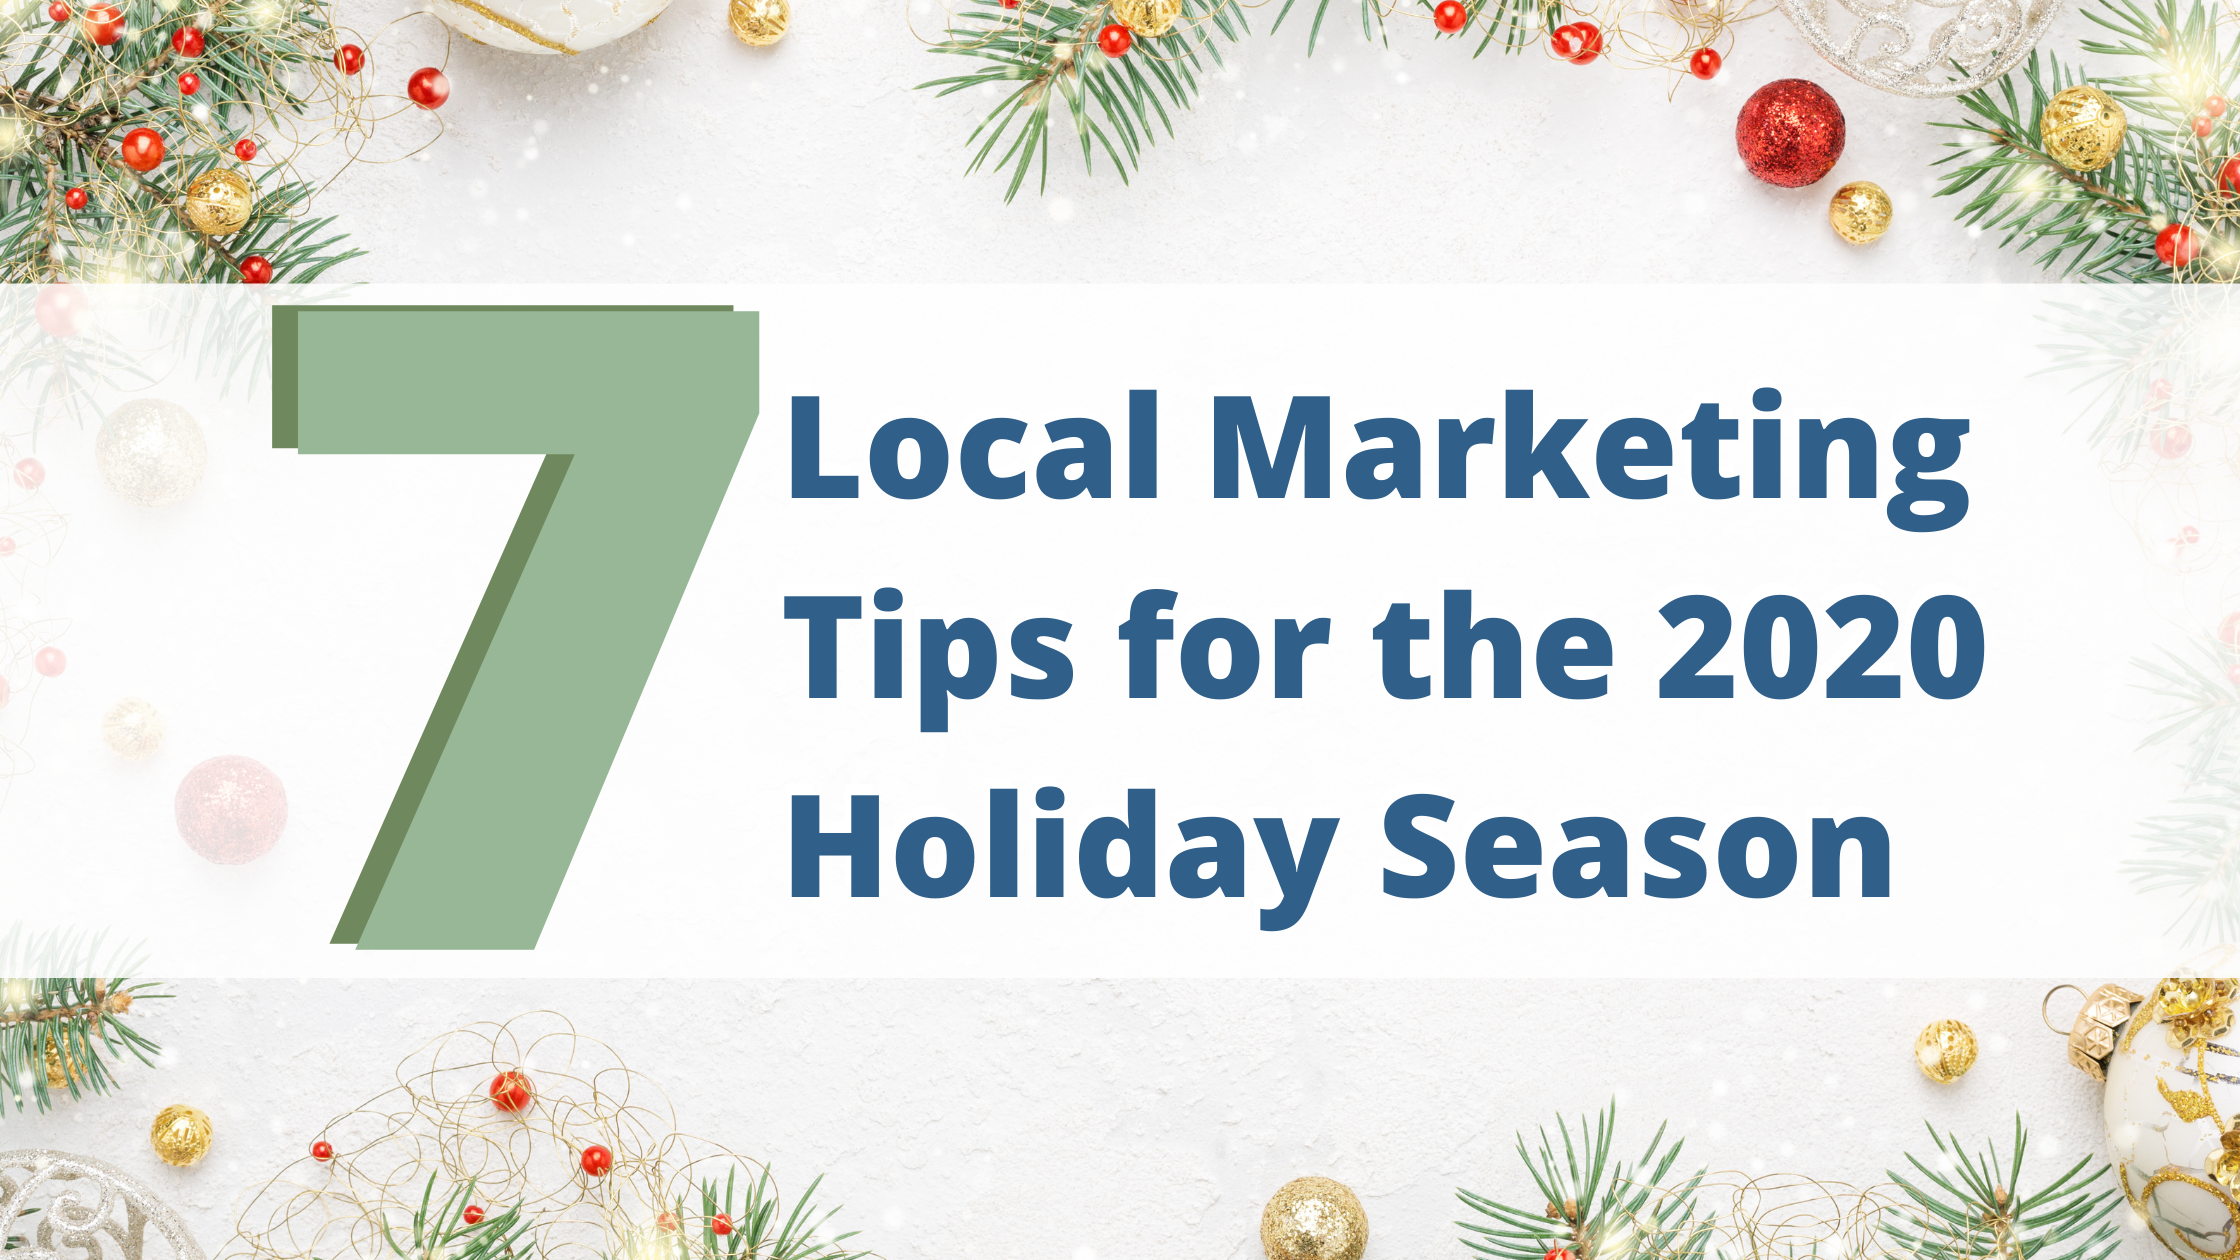 7 Local Marketing Tips for the 2020 Holiday Season